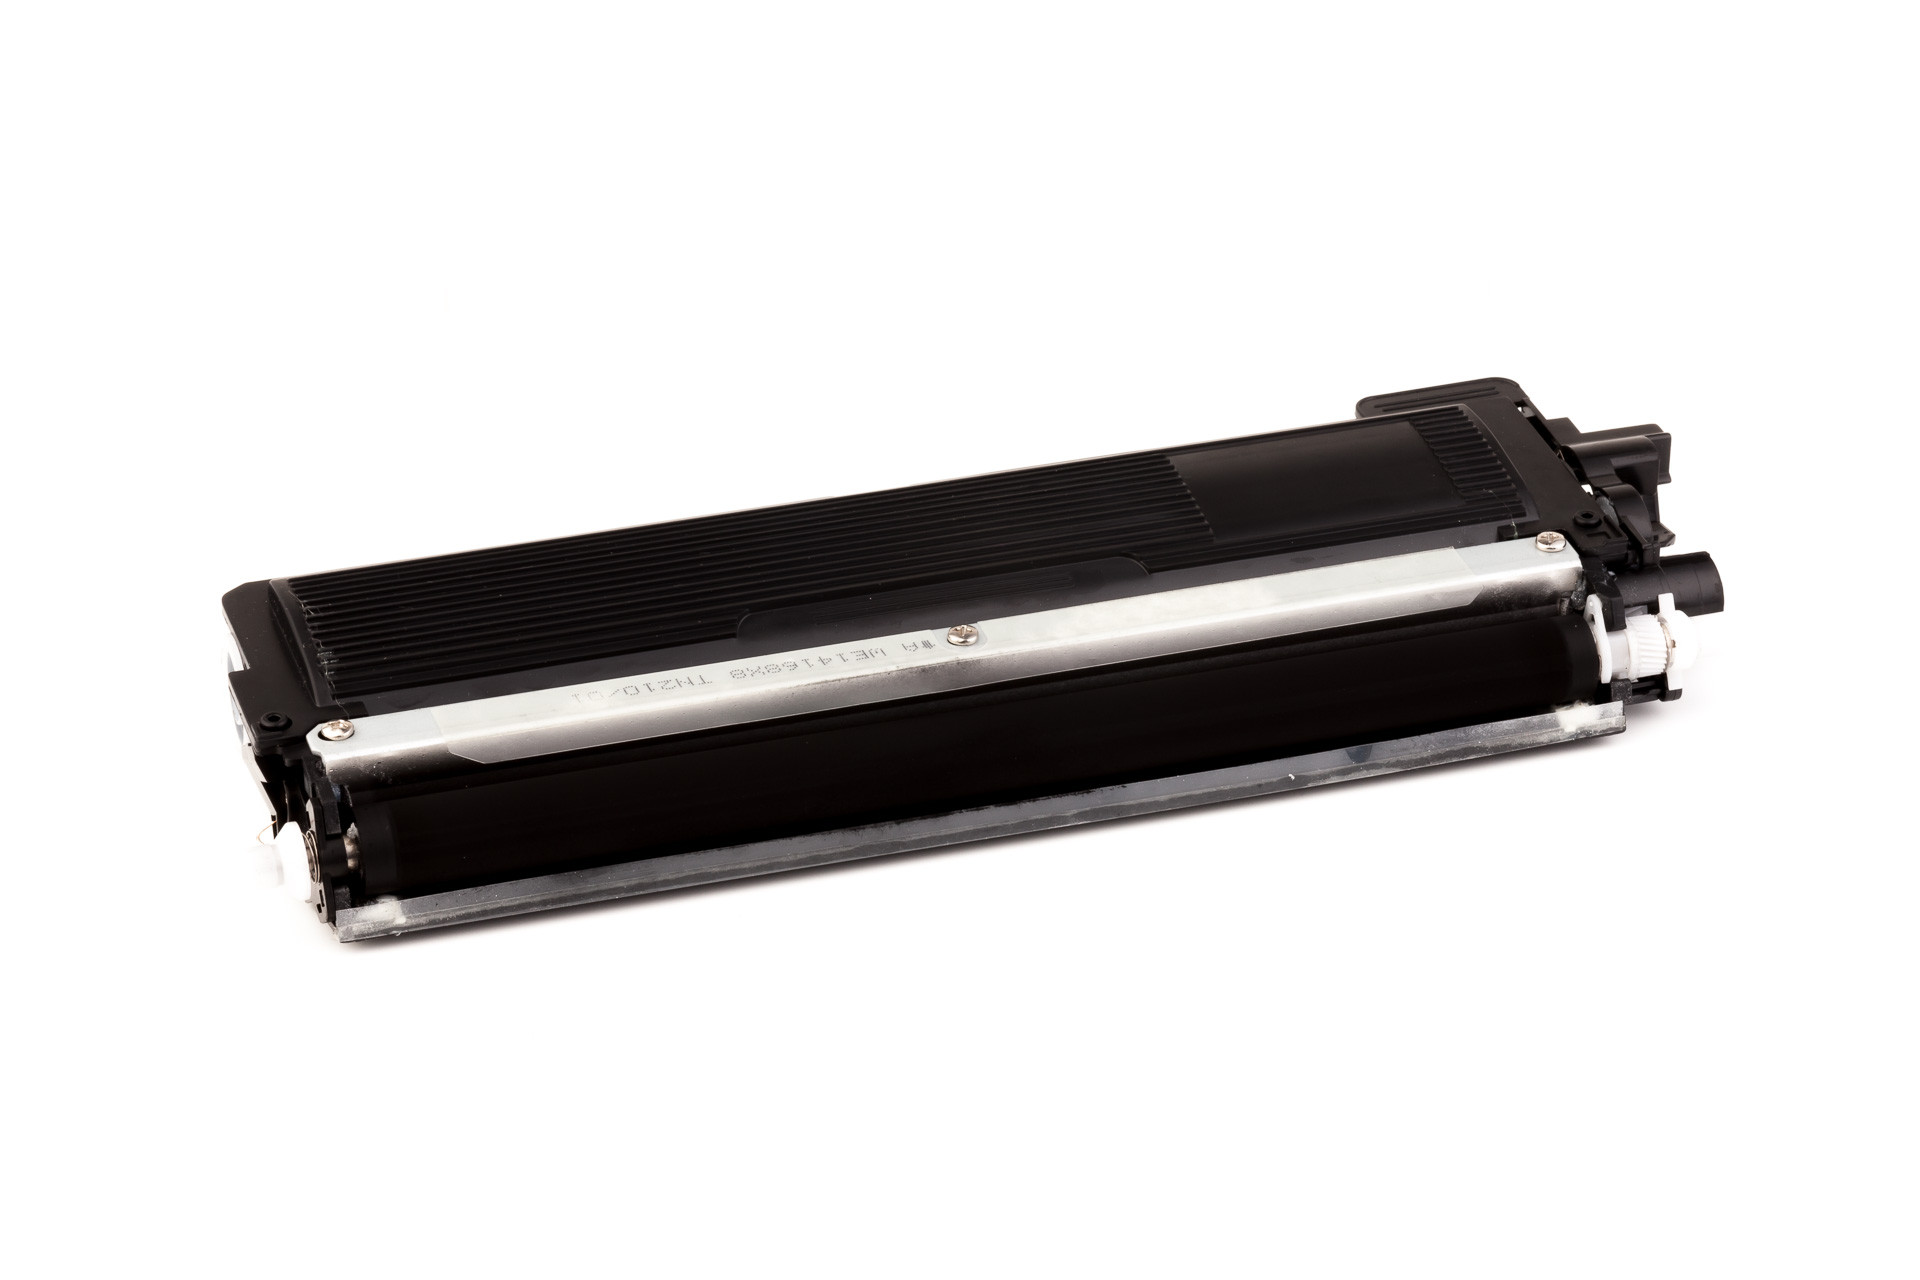 Toner cartridge (alternative) compatible with Brother HL 3040/3070/DCP 9010/MFC 9120/9320 black  TN230BK / TN 230 BK